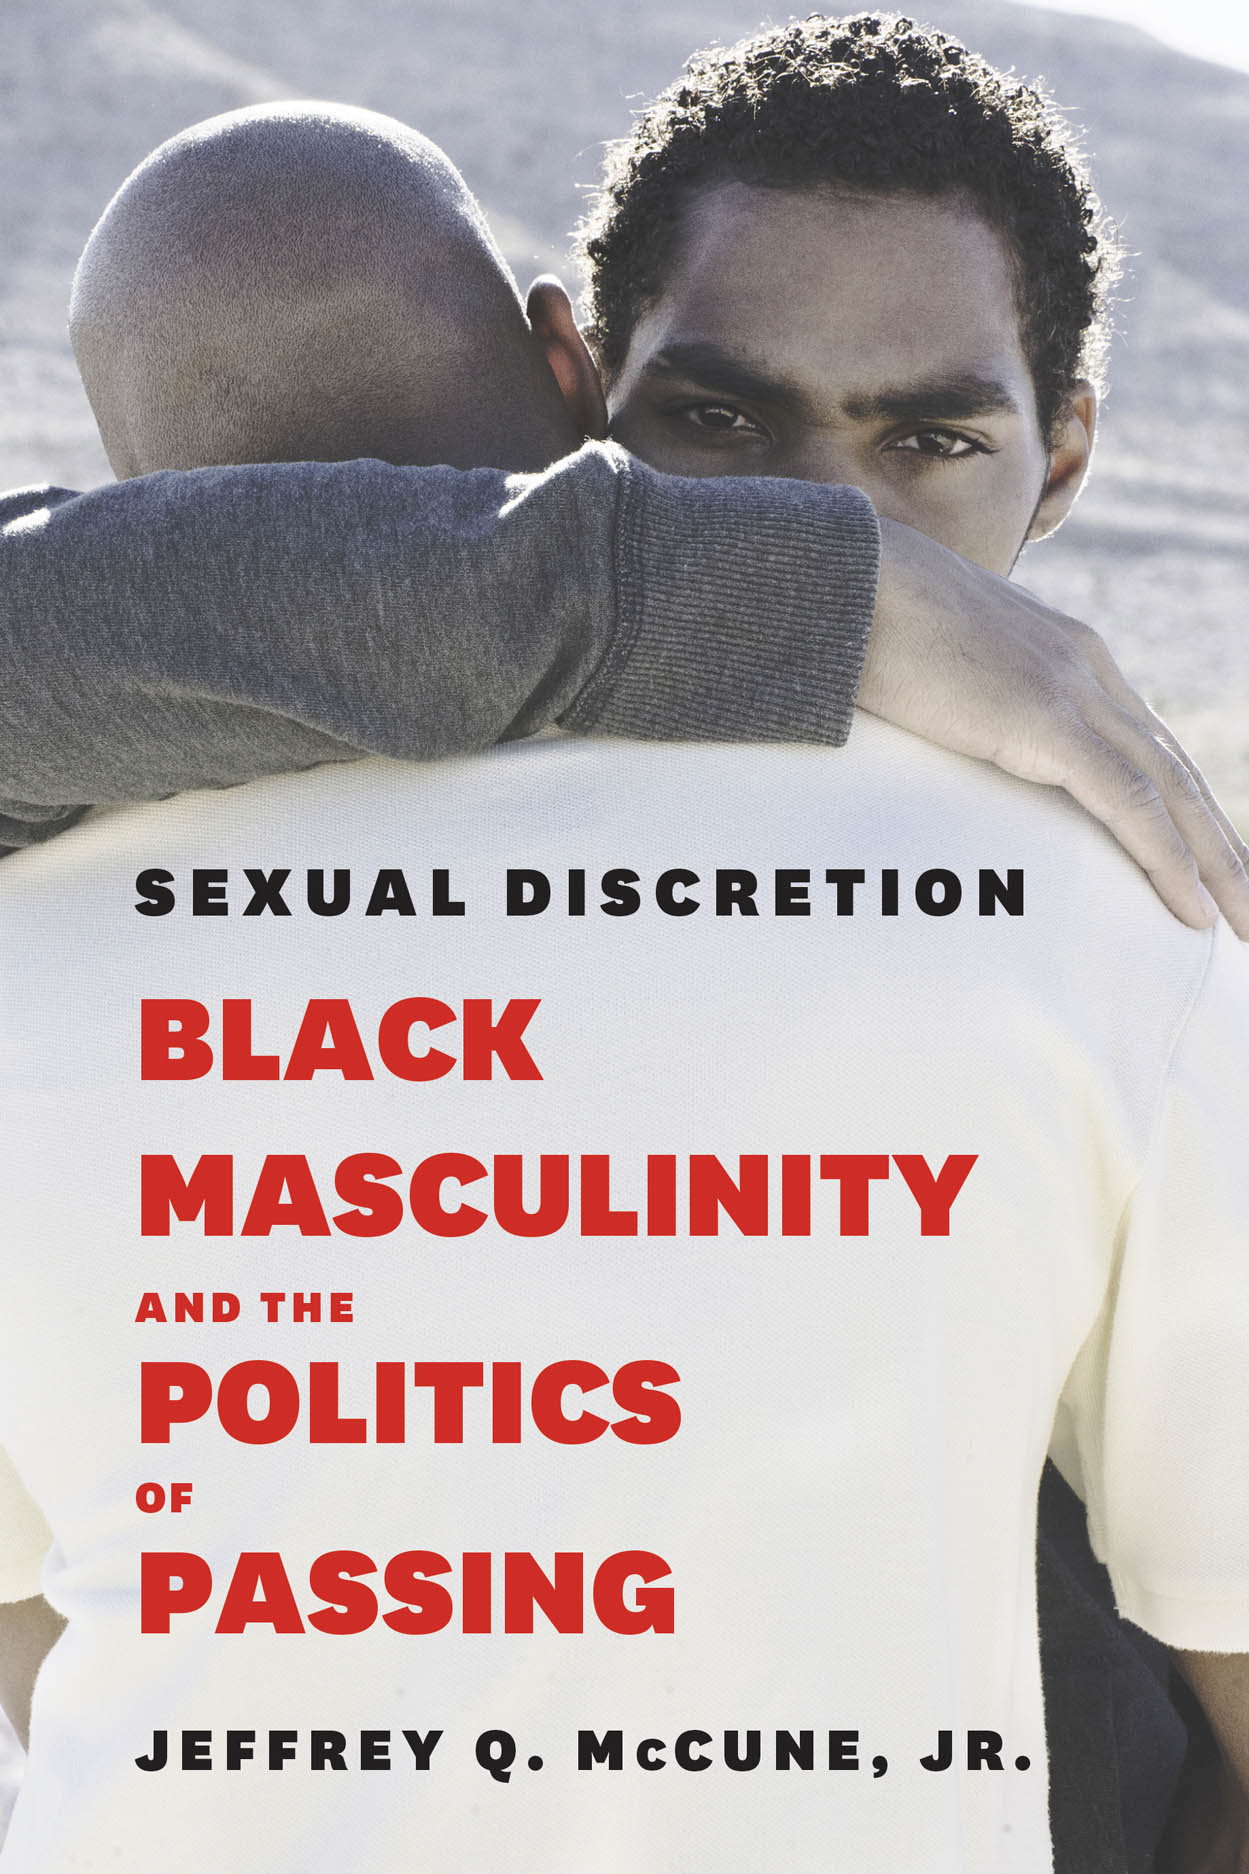 Sexual Discretion: Black Masculinity and the Politics of Passing